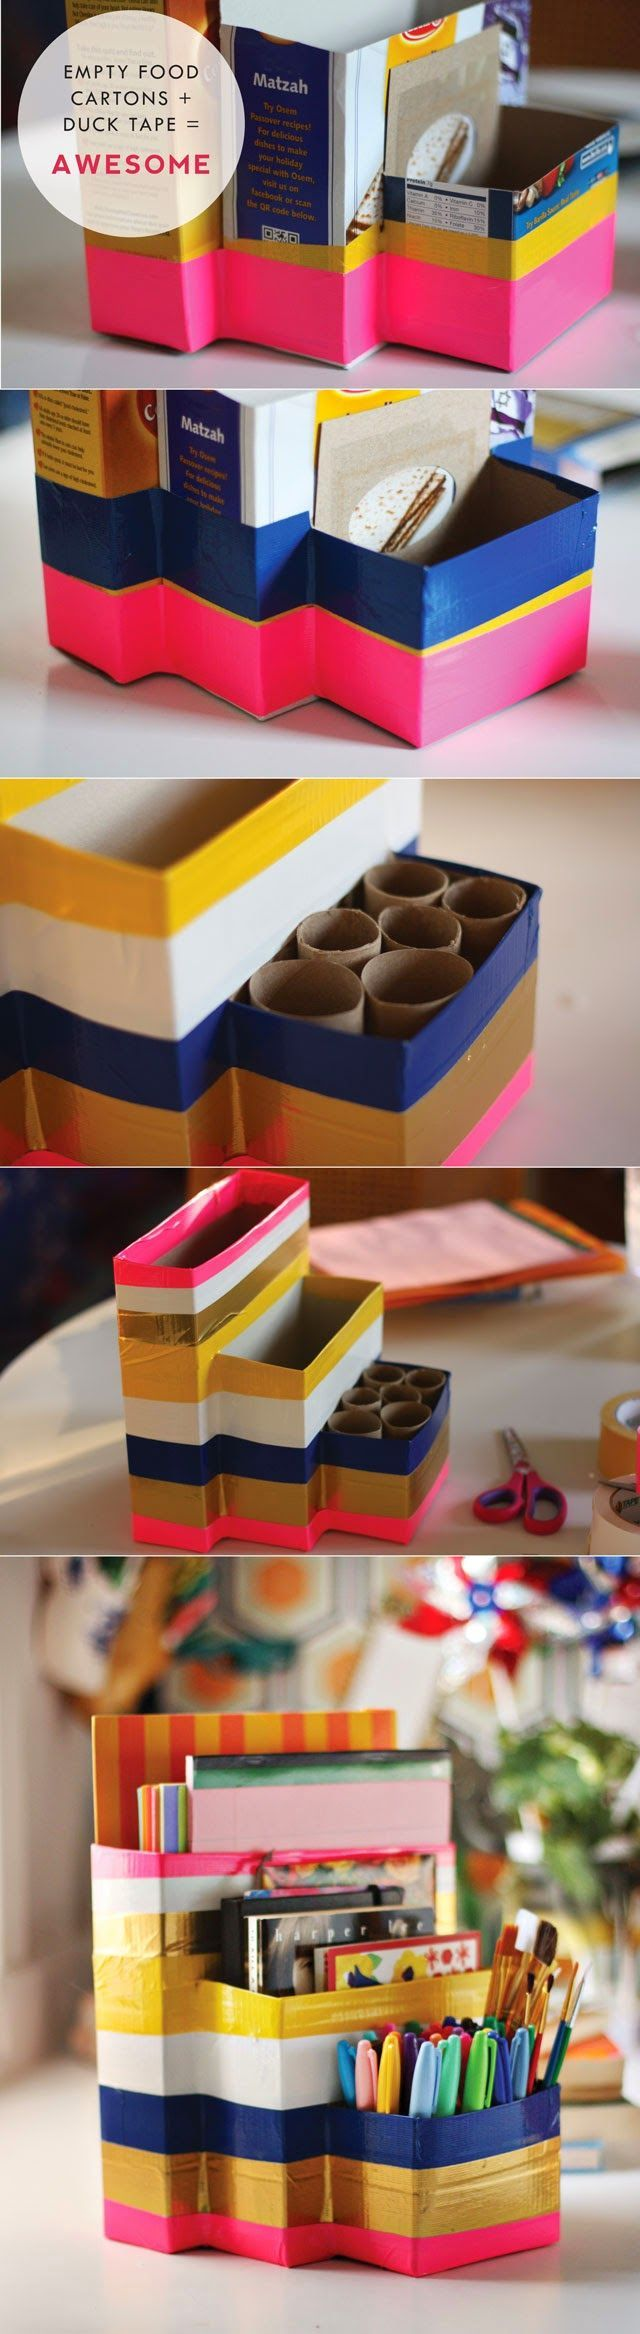 Most Pinned Great Diy Recycle Ideas on Pinterest 9